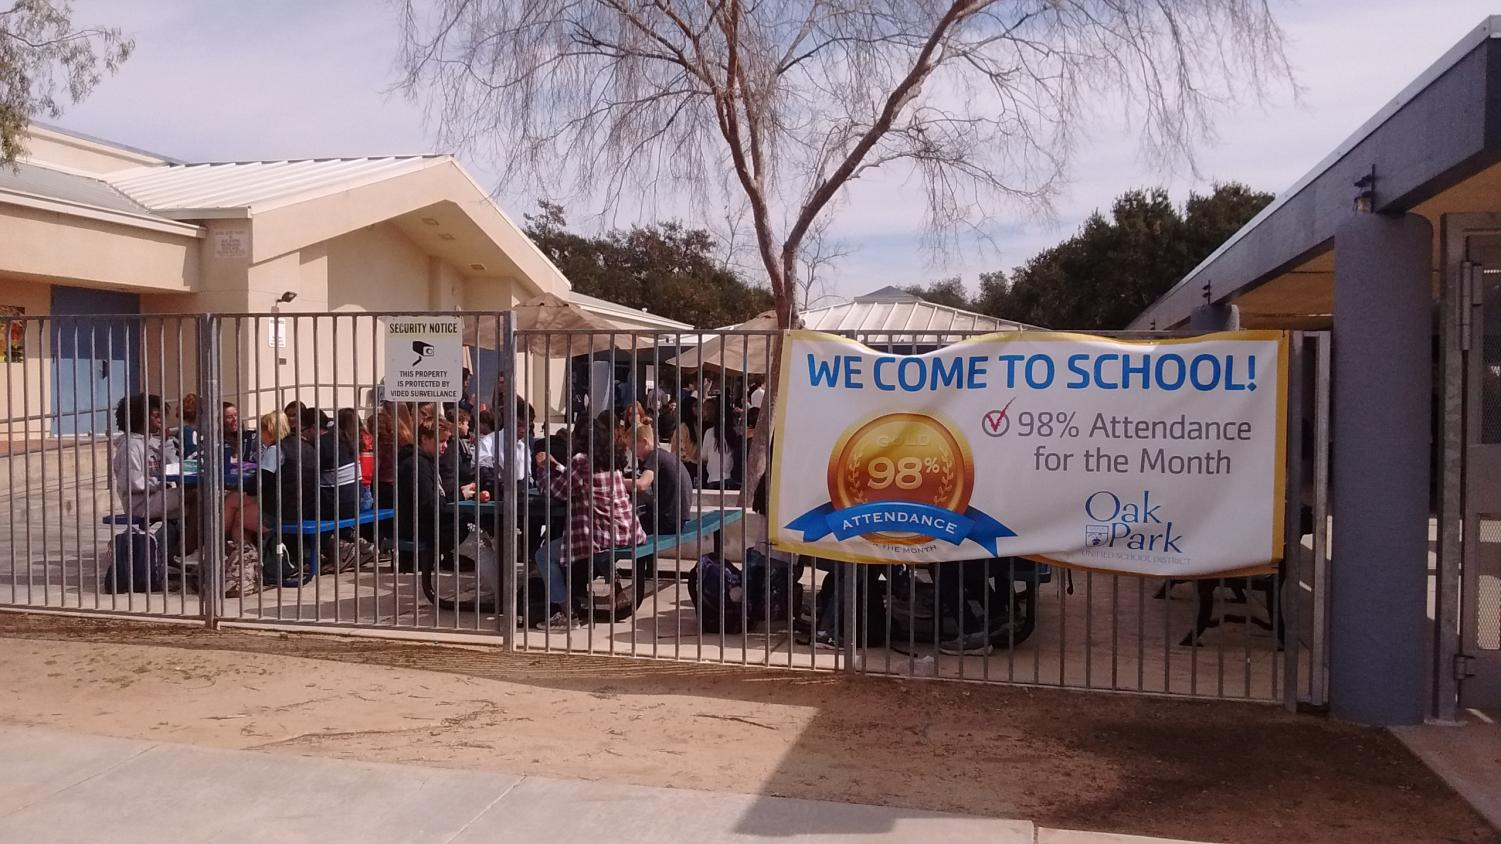 MCMS students gathera t lunch. Two MCMS students were assaulted near campus while walking home after school.